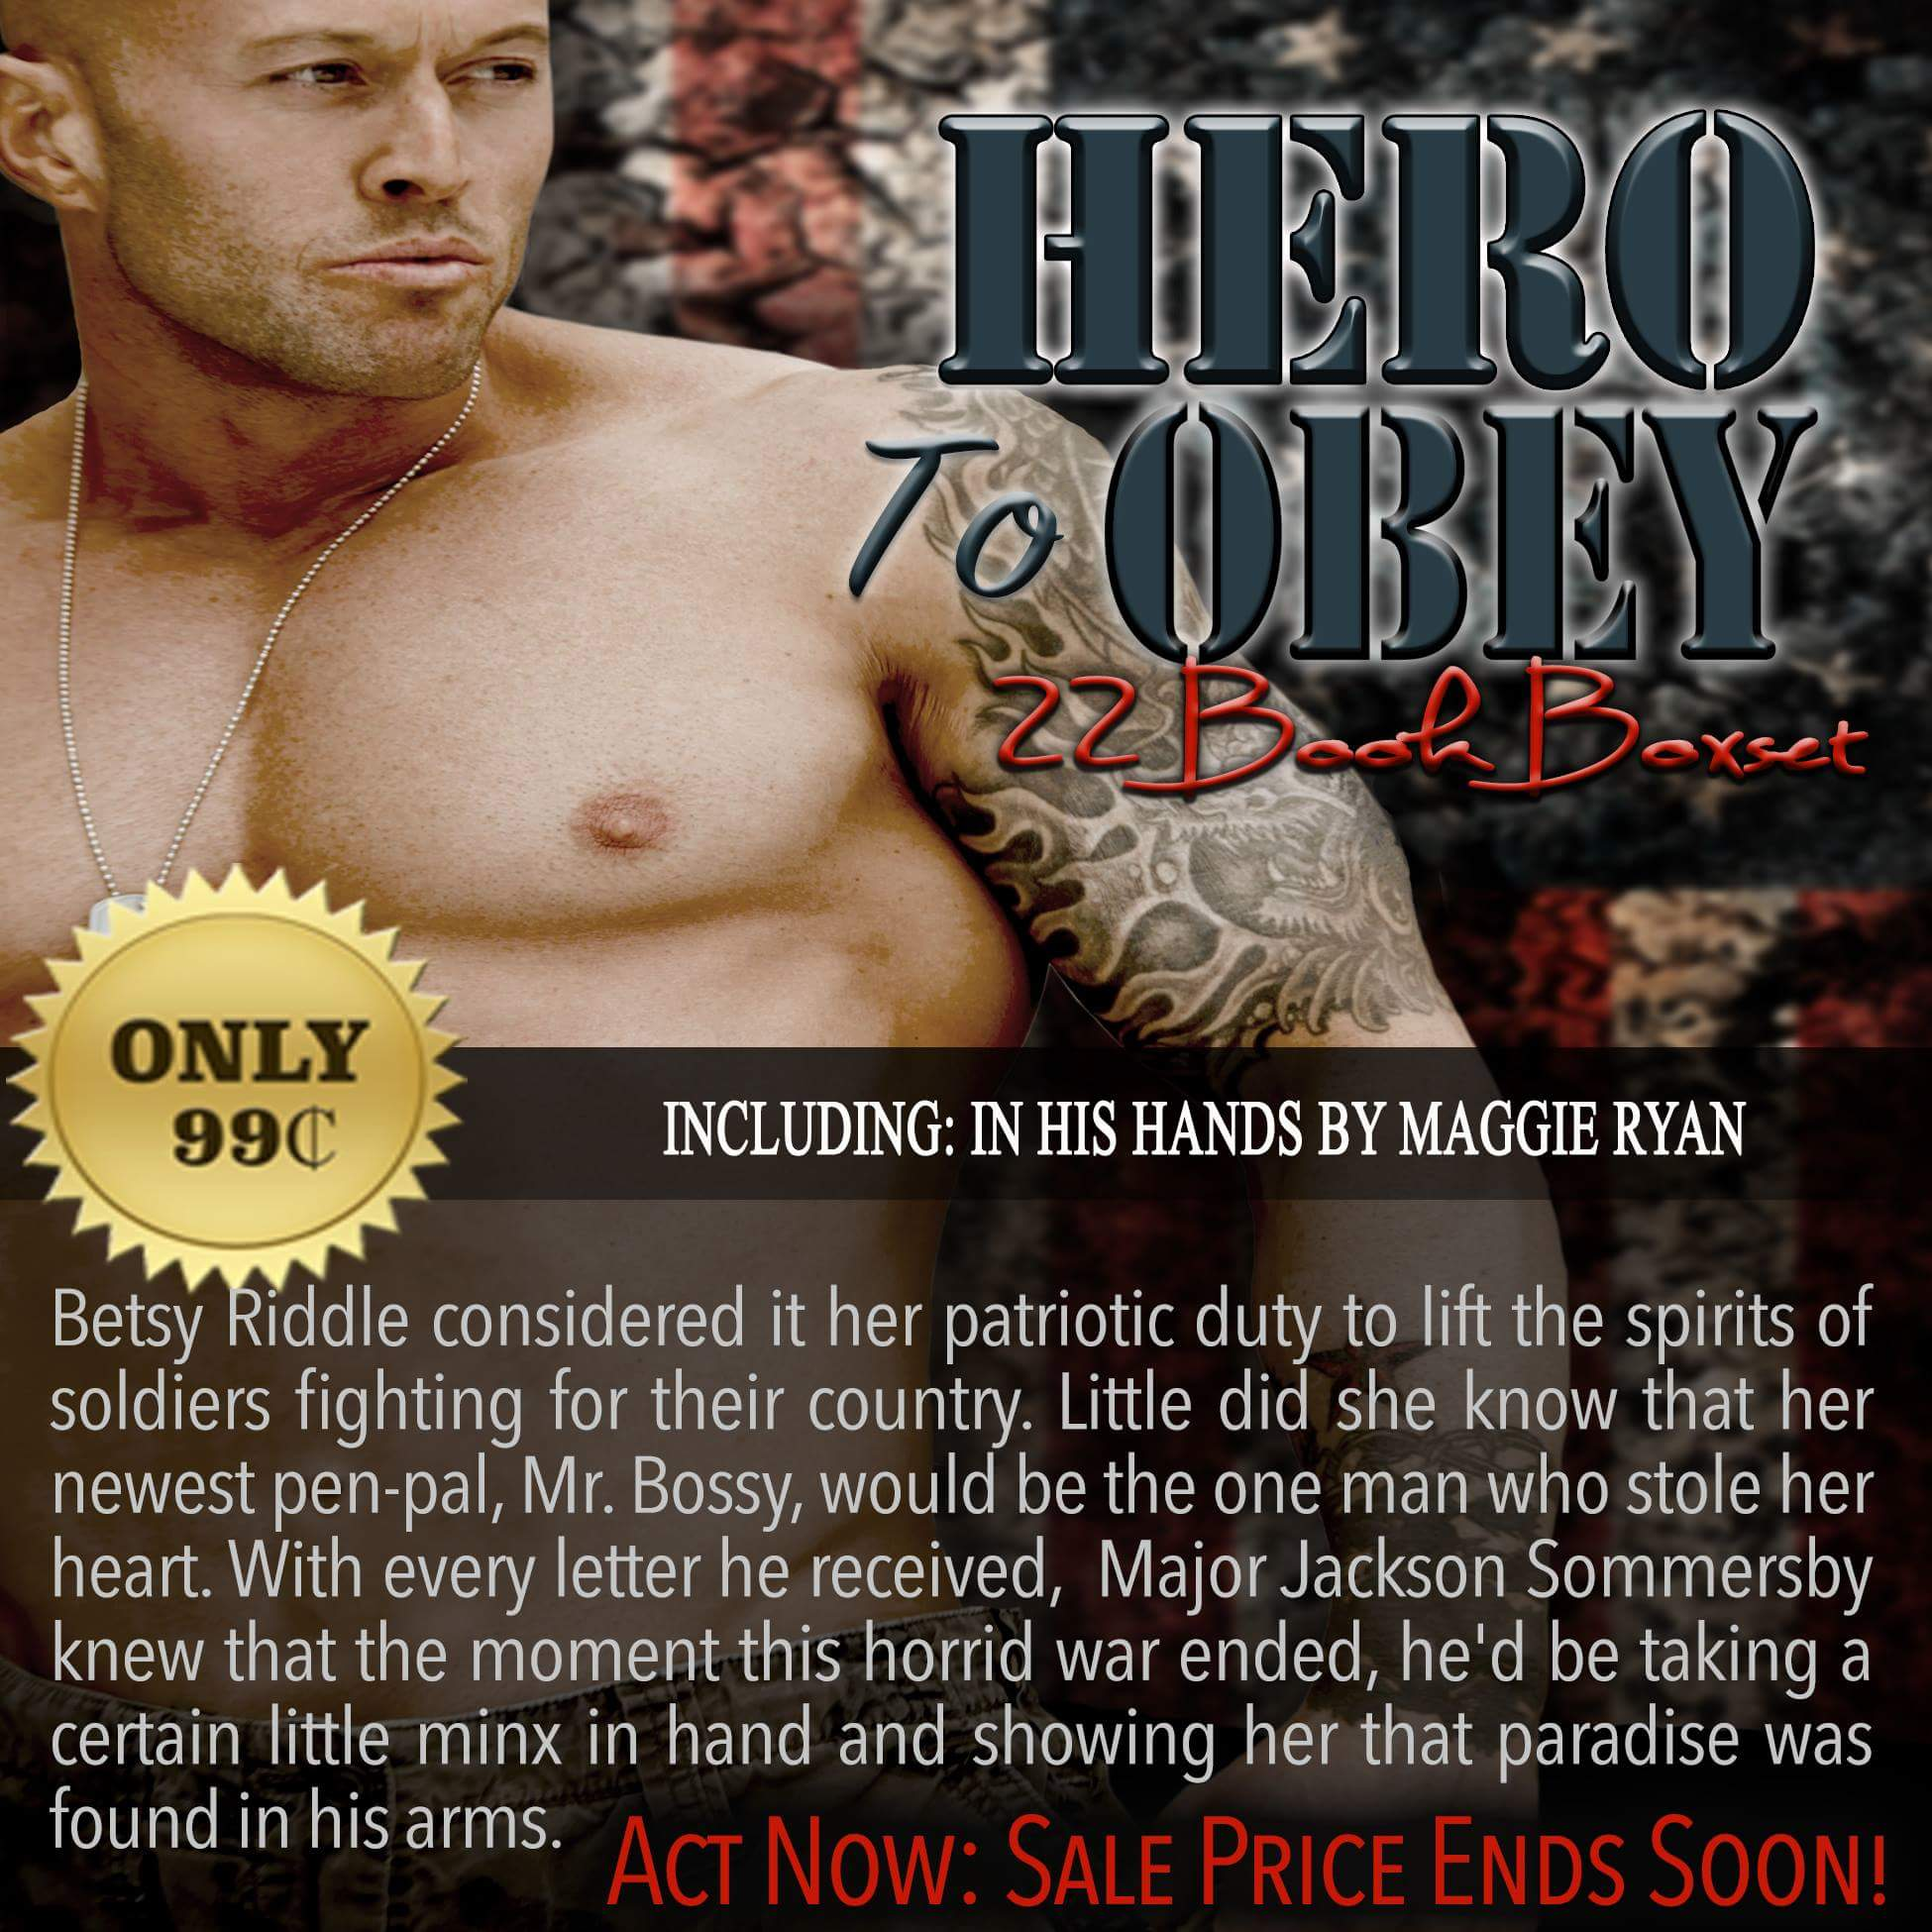 Hero To Obey Book Cover Model Actor John Joseph Quinlan by Maggie Ryan. #JohnQuinlan #Hero2obey